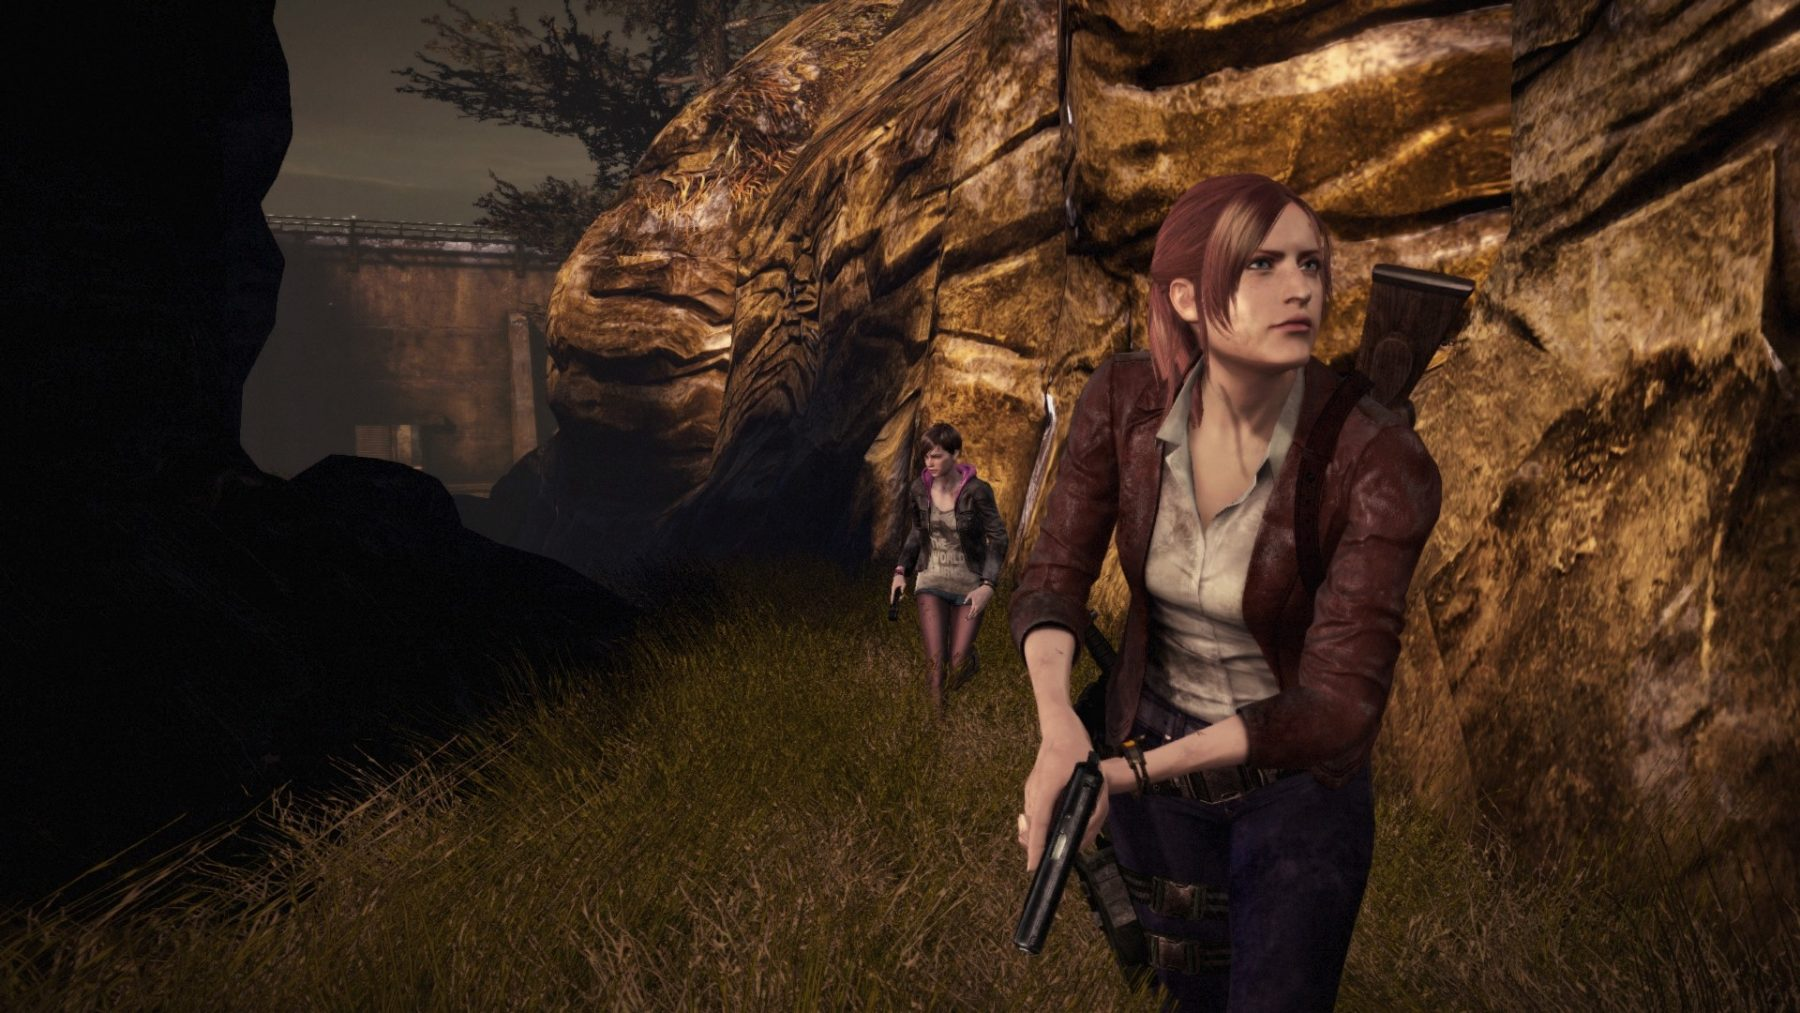 Download hacked version the of Resident Evil Revelations 2